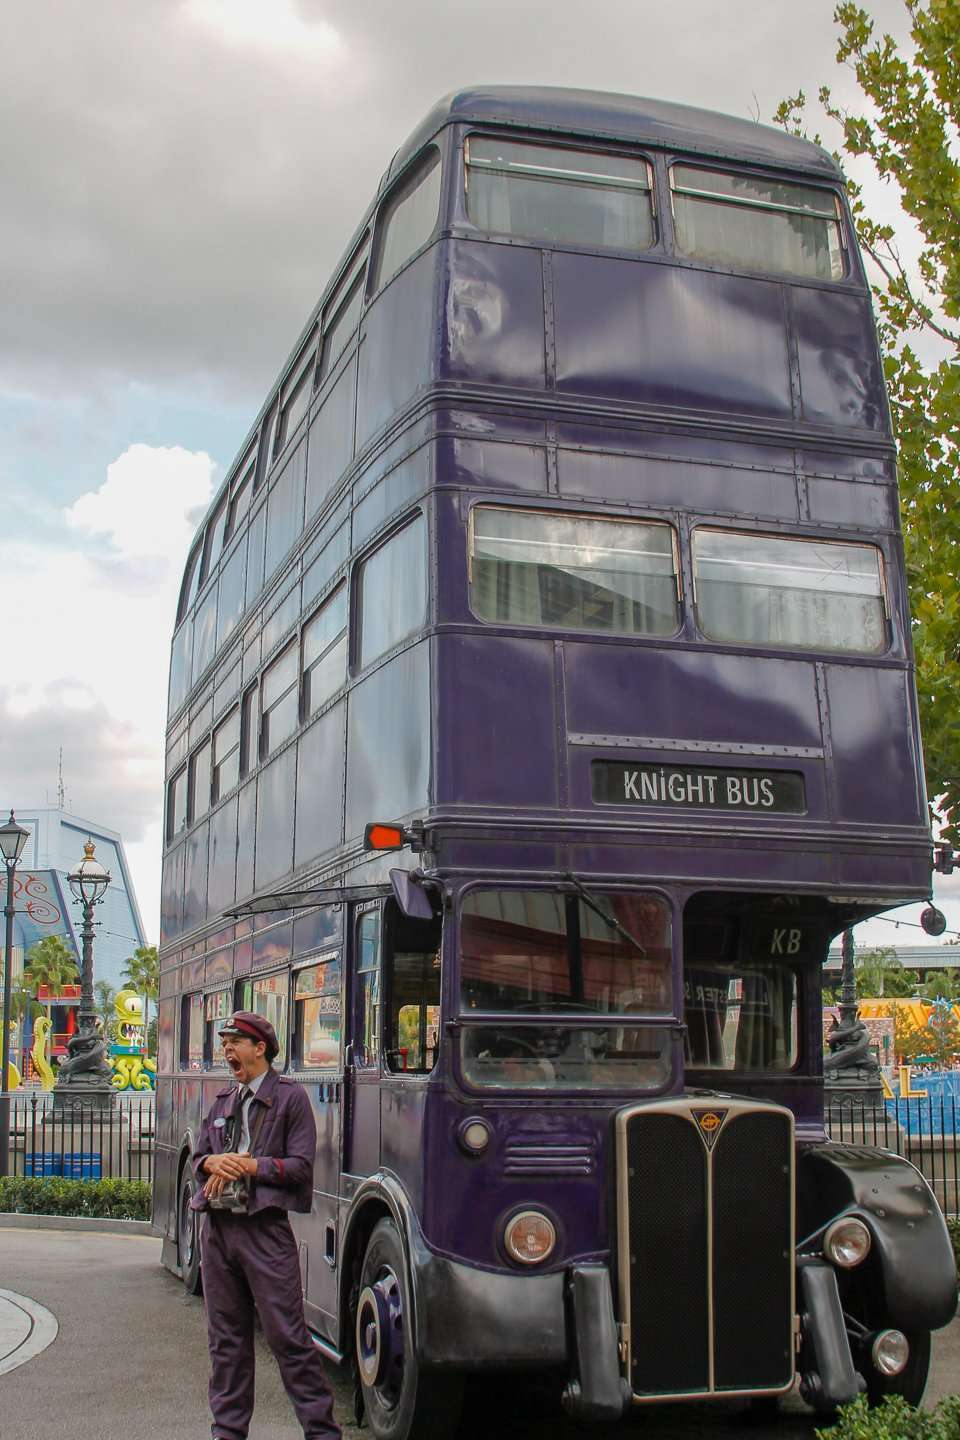 the Knight Bus at Wizarding World of Harry Potter